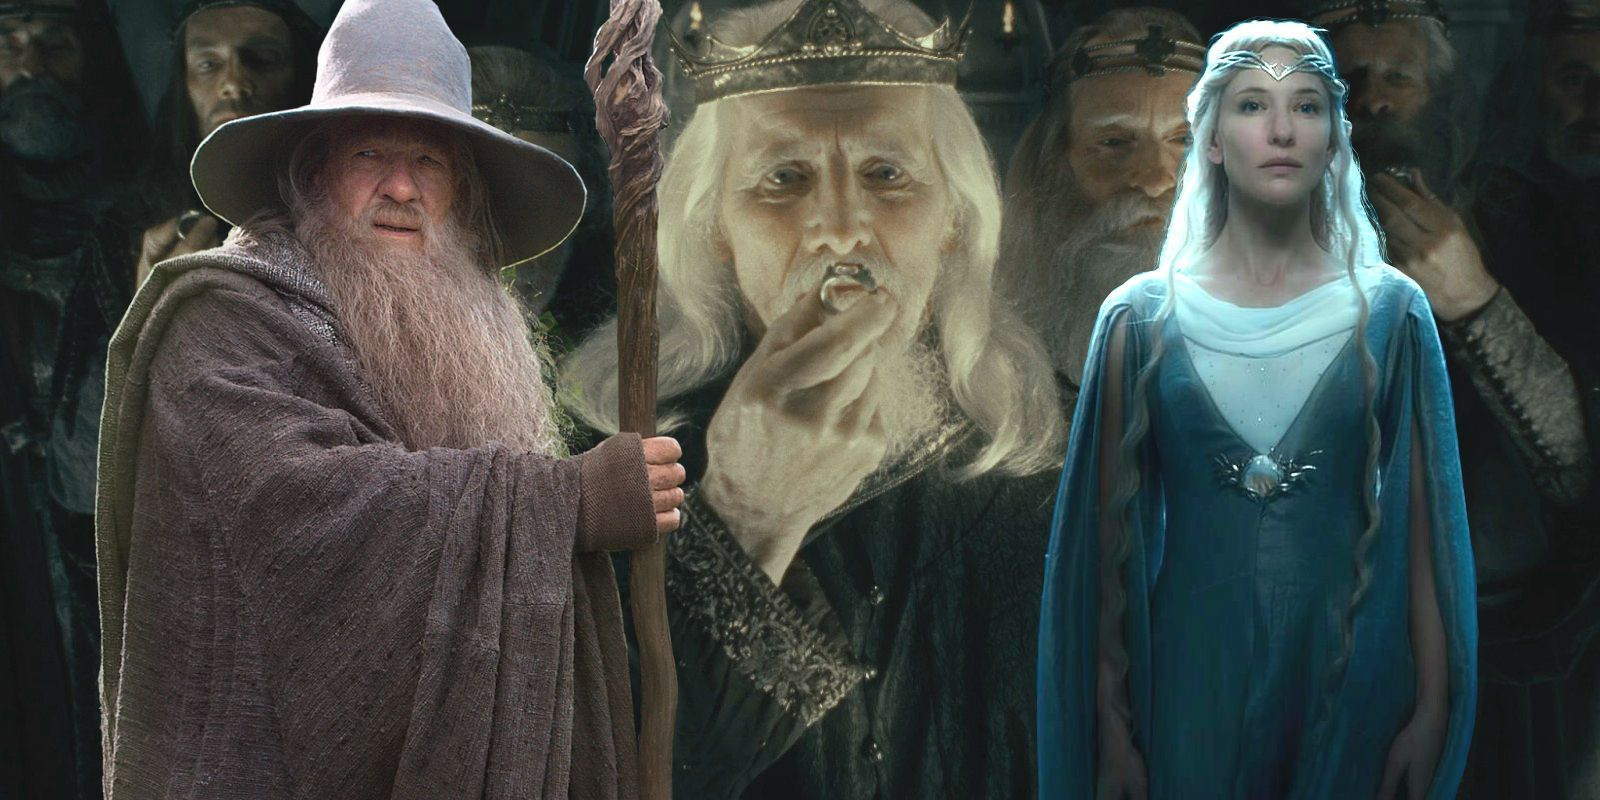 Lord Of The Rings: What Happened To The OTHER Rings Of Power